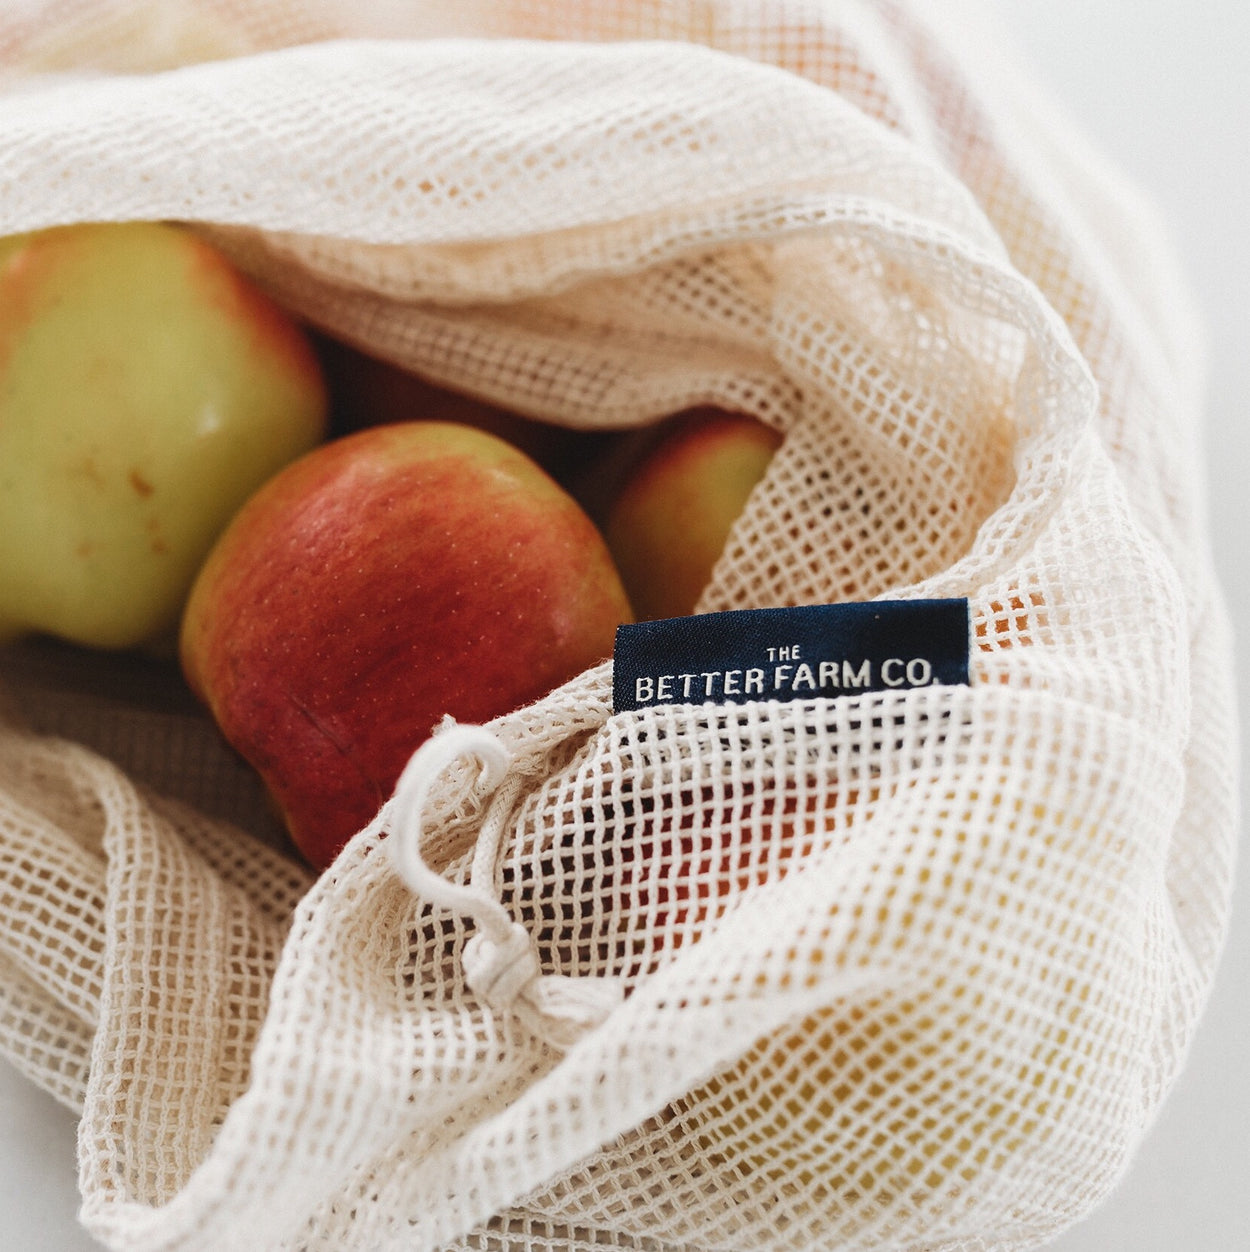 The Better Farm Co's five Mesh Produce Bags are filled with produce and bulk items, and surrounded by other sustainable, zero-waste goods. The cotton mesh produce bags are organic, and have uses beyond gathering produce at the grocery store. They are the perfect plastic-free alternative, and are versatile. You can use them for produce, lunch bags, washing bags, organizing suitcases or storing baby items in your bag.